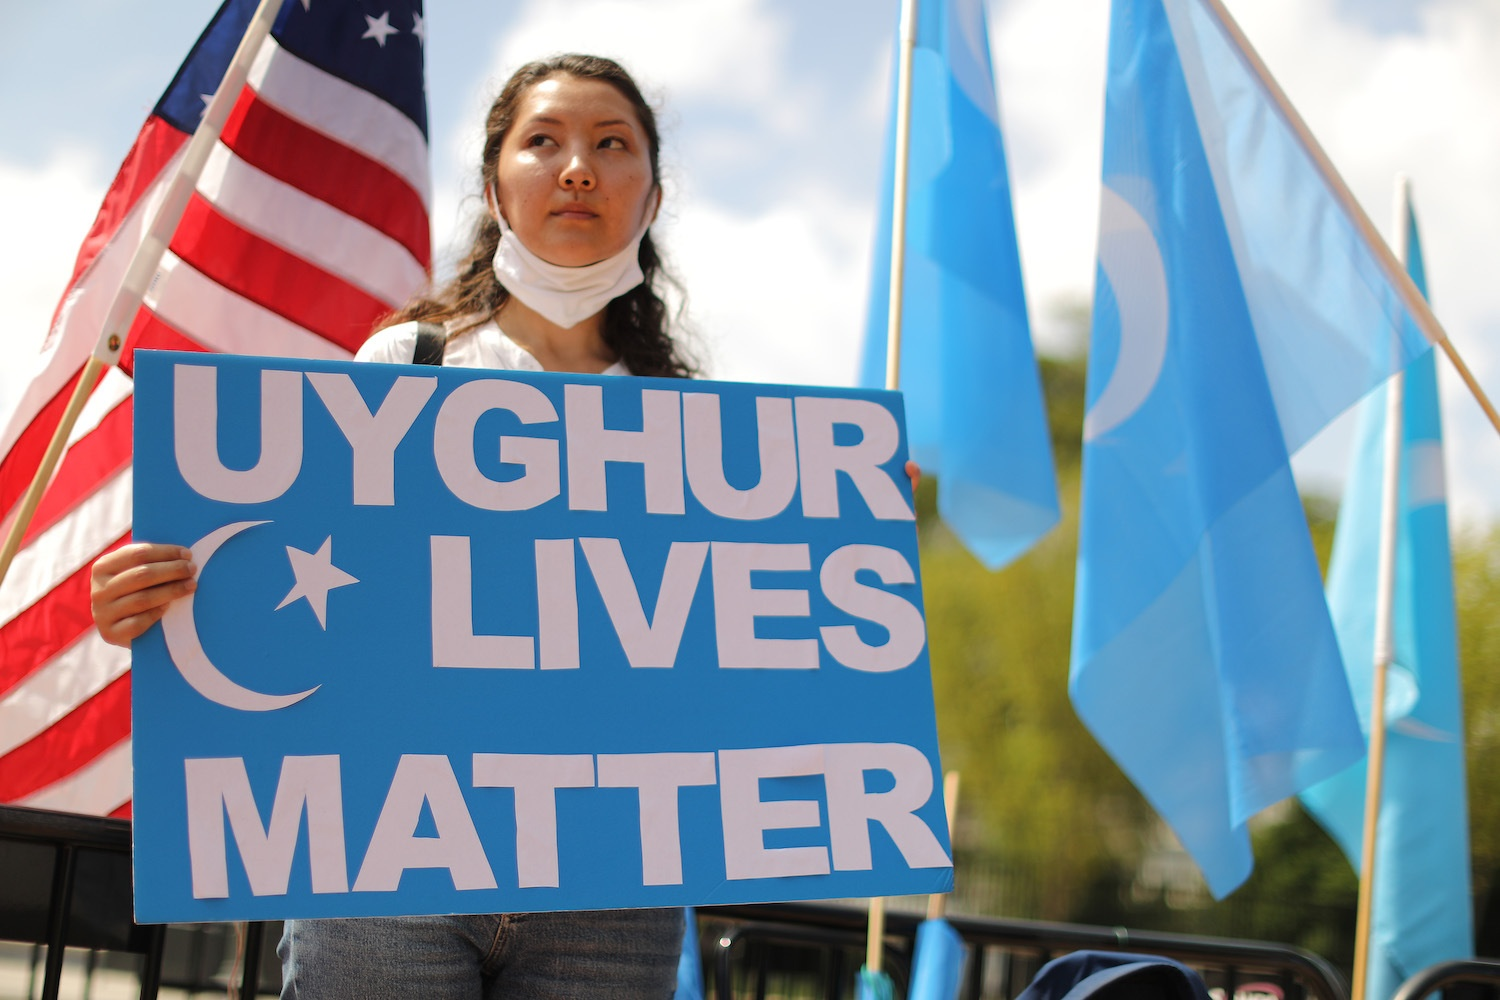 A protester holding a placard supporting the Uyghurs